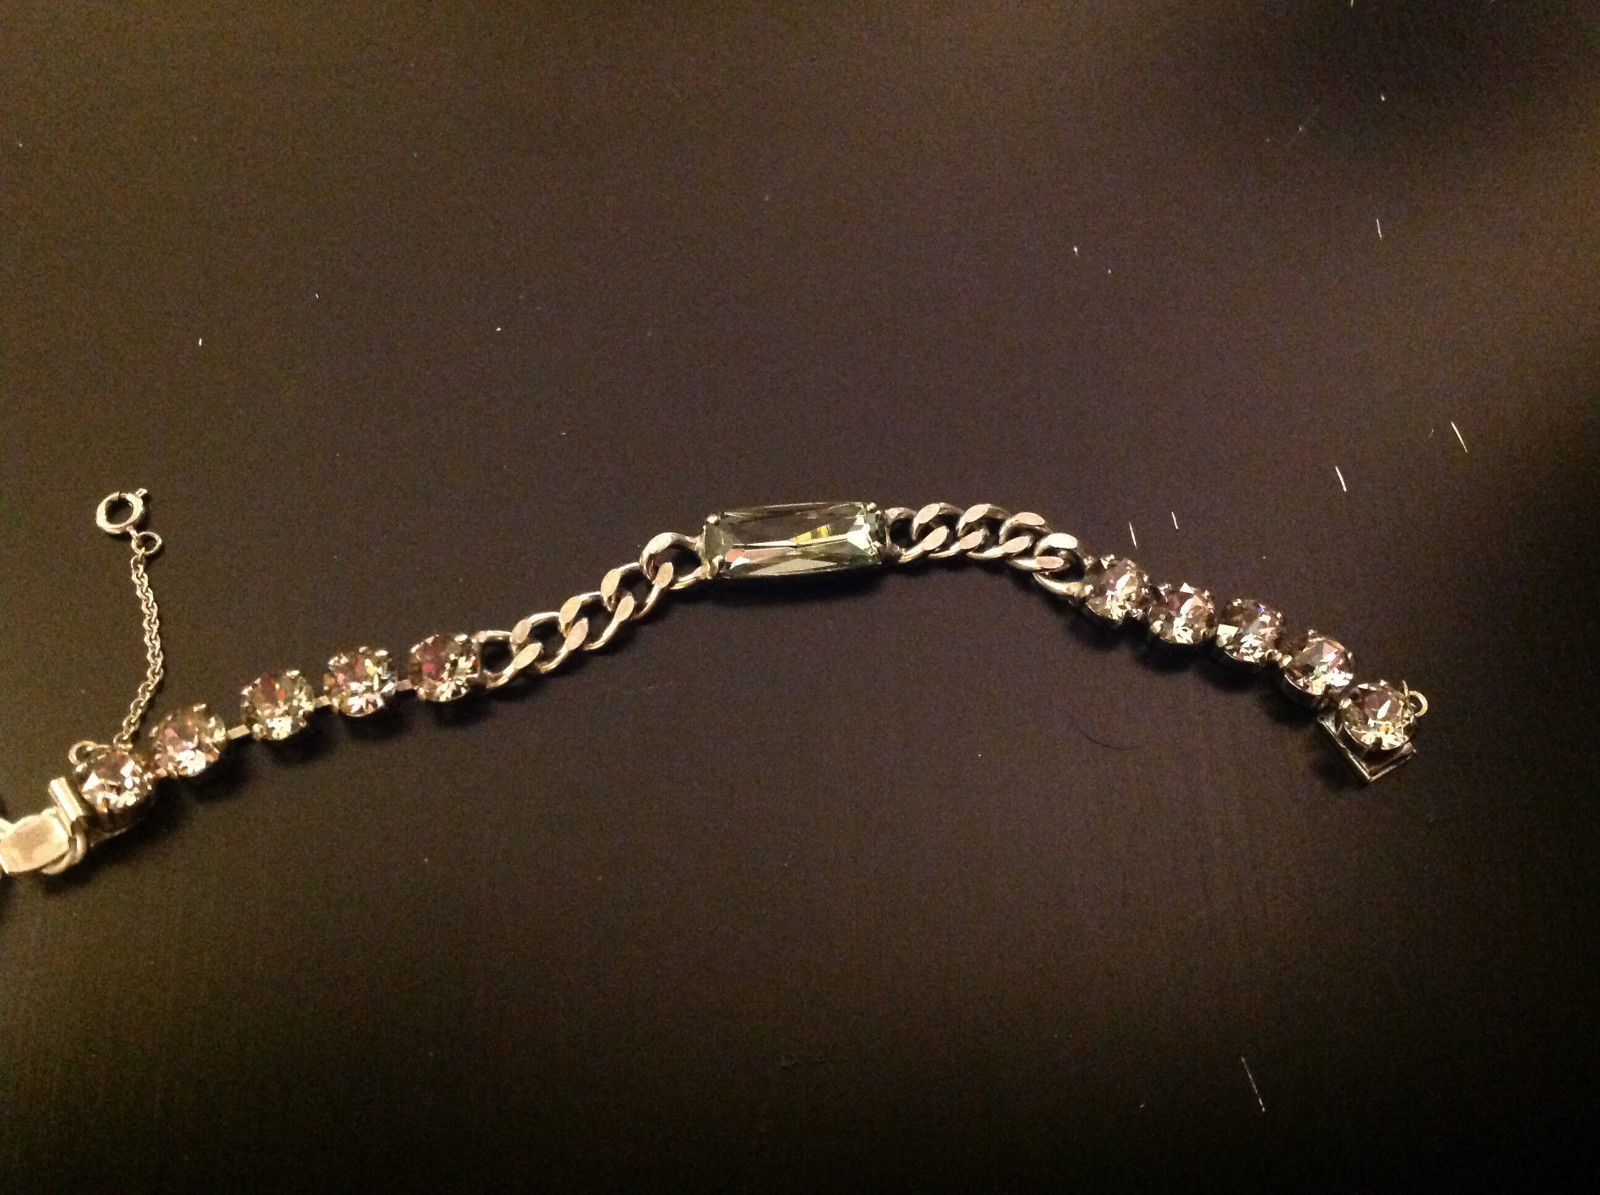 New Sorrelli Chain Purple Lotus Bracelet 7.5 inches Long